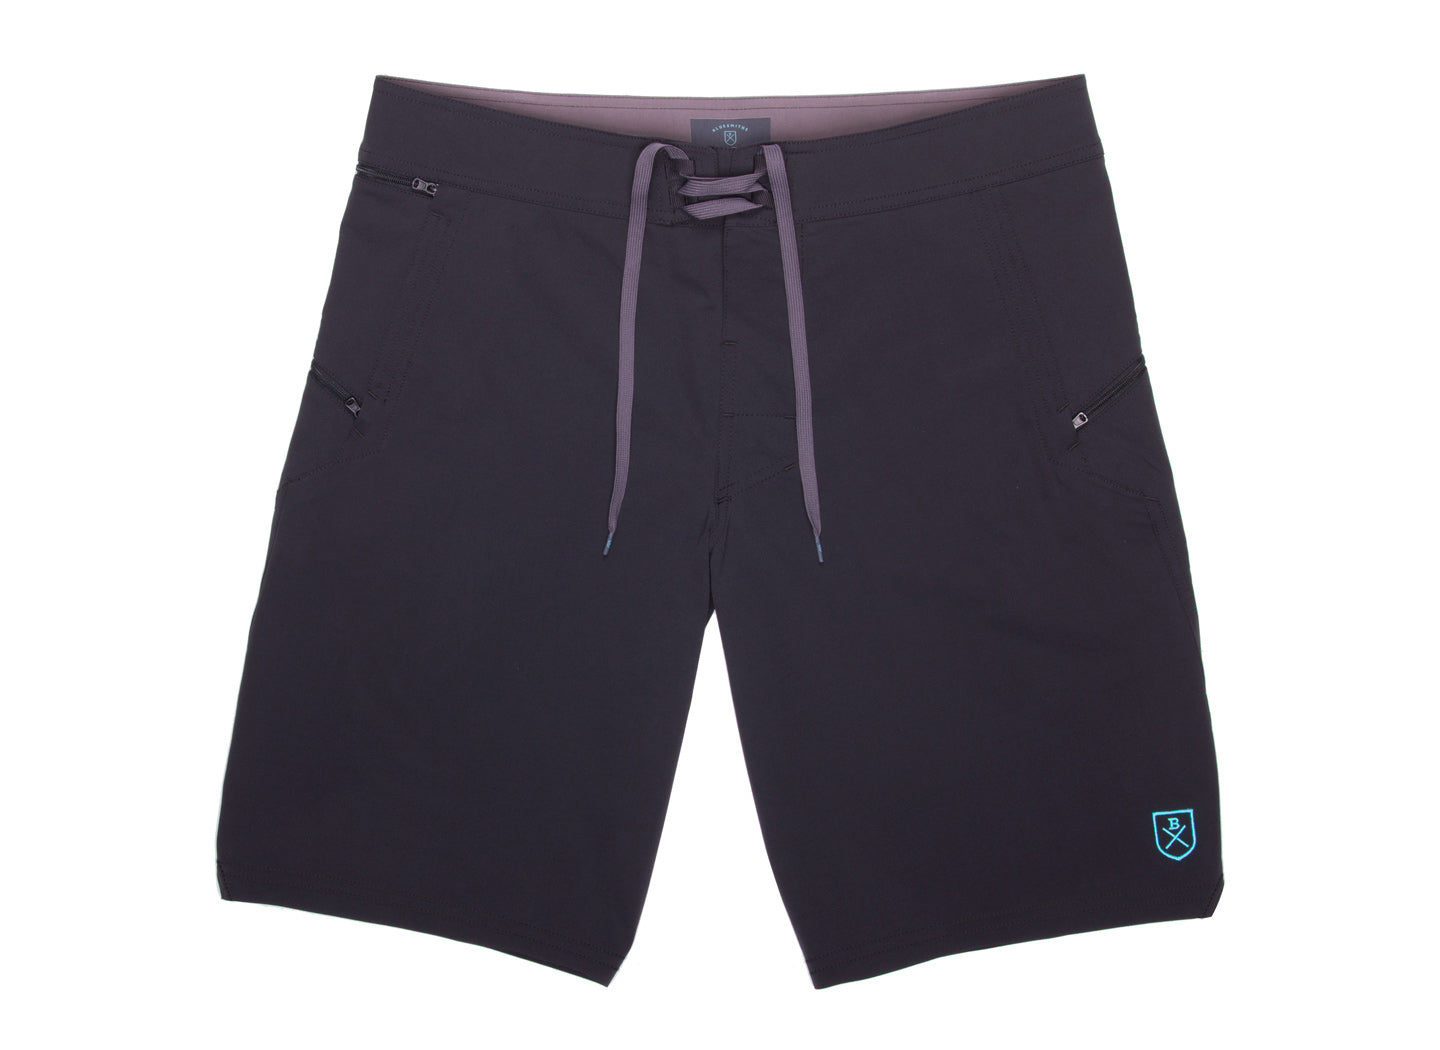 The Spartan Board Shorts in Almost Black - The World's Finest Surf Trunks | BLUESMITHS